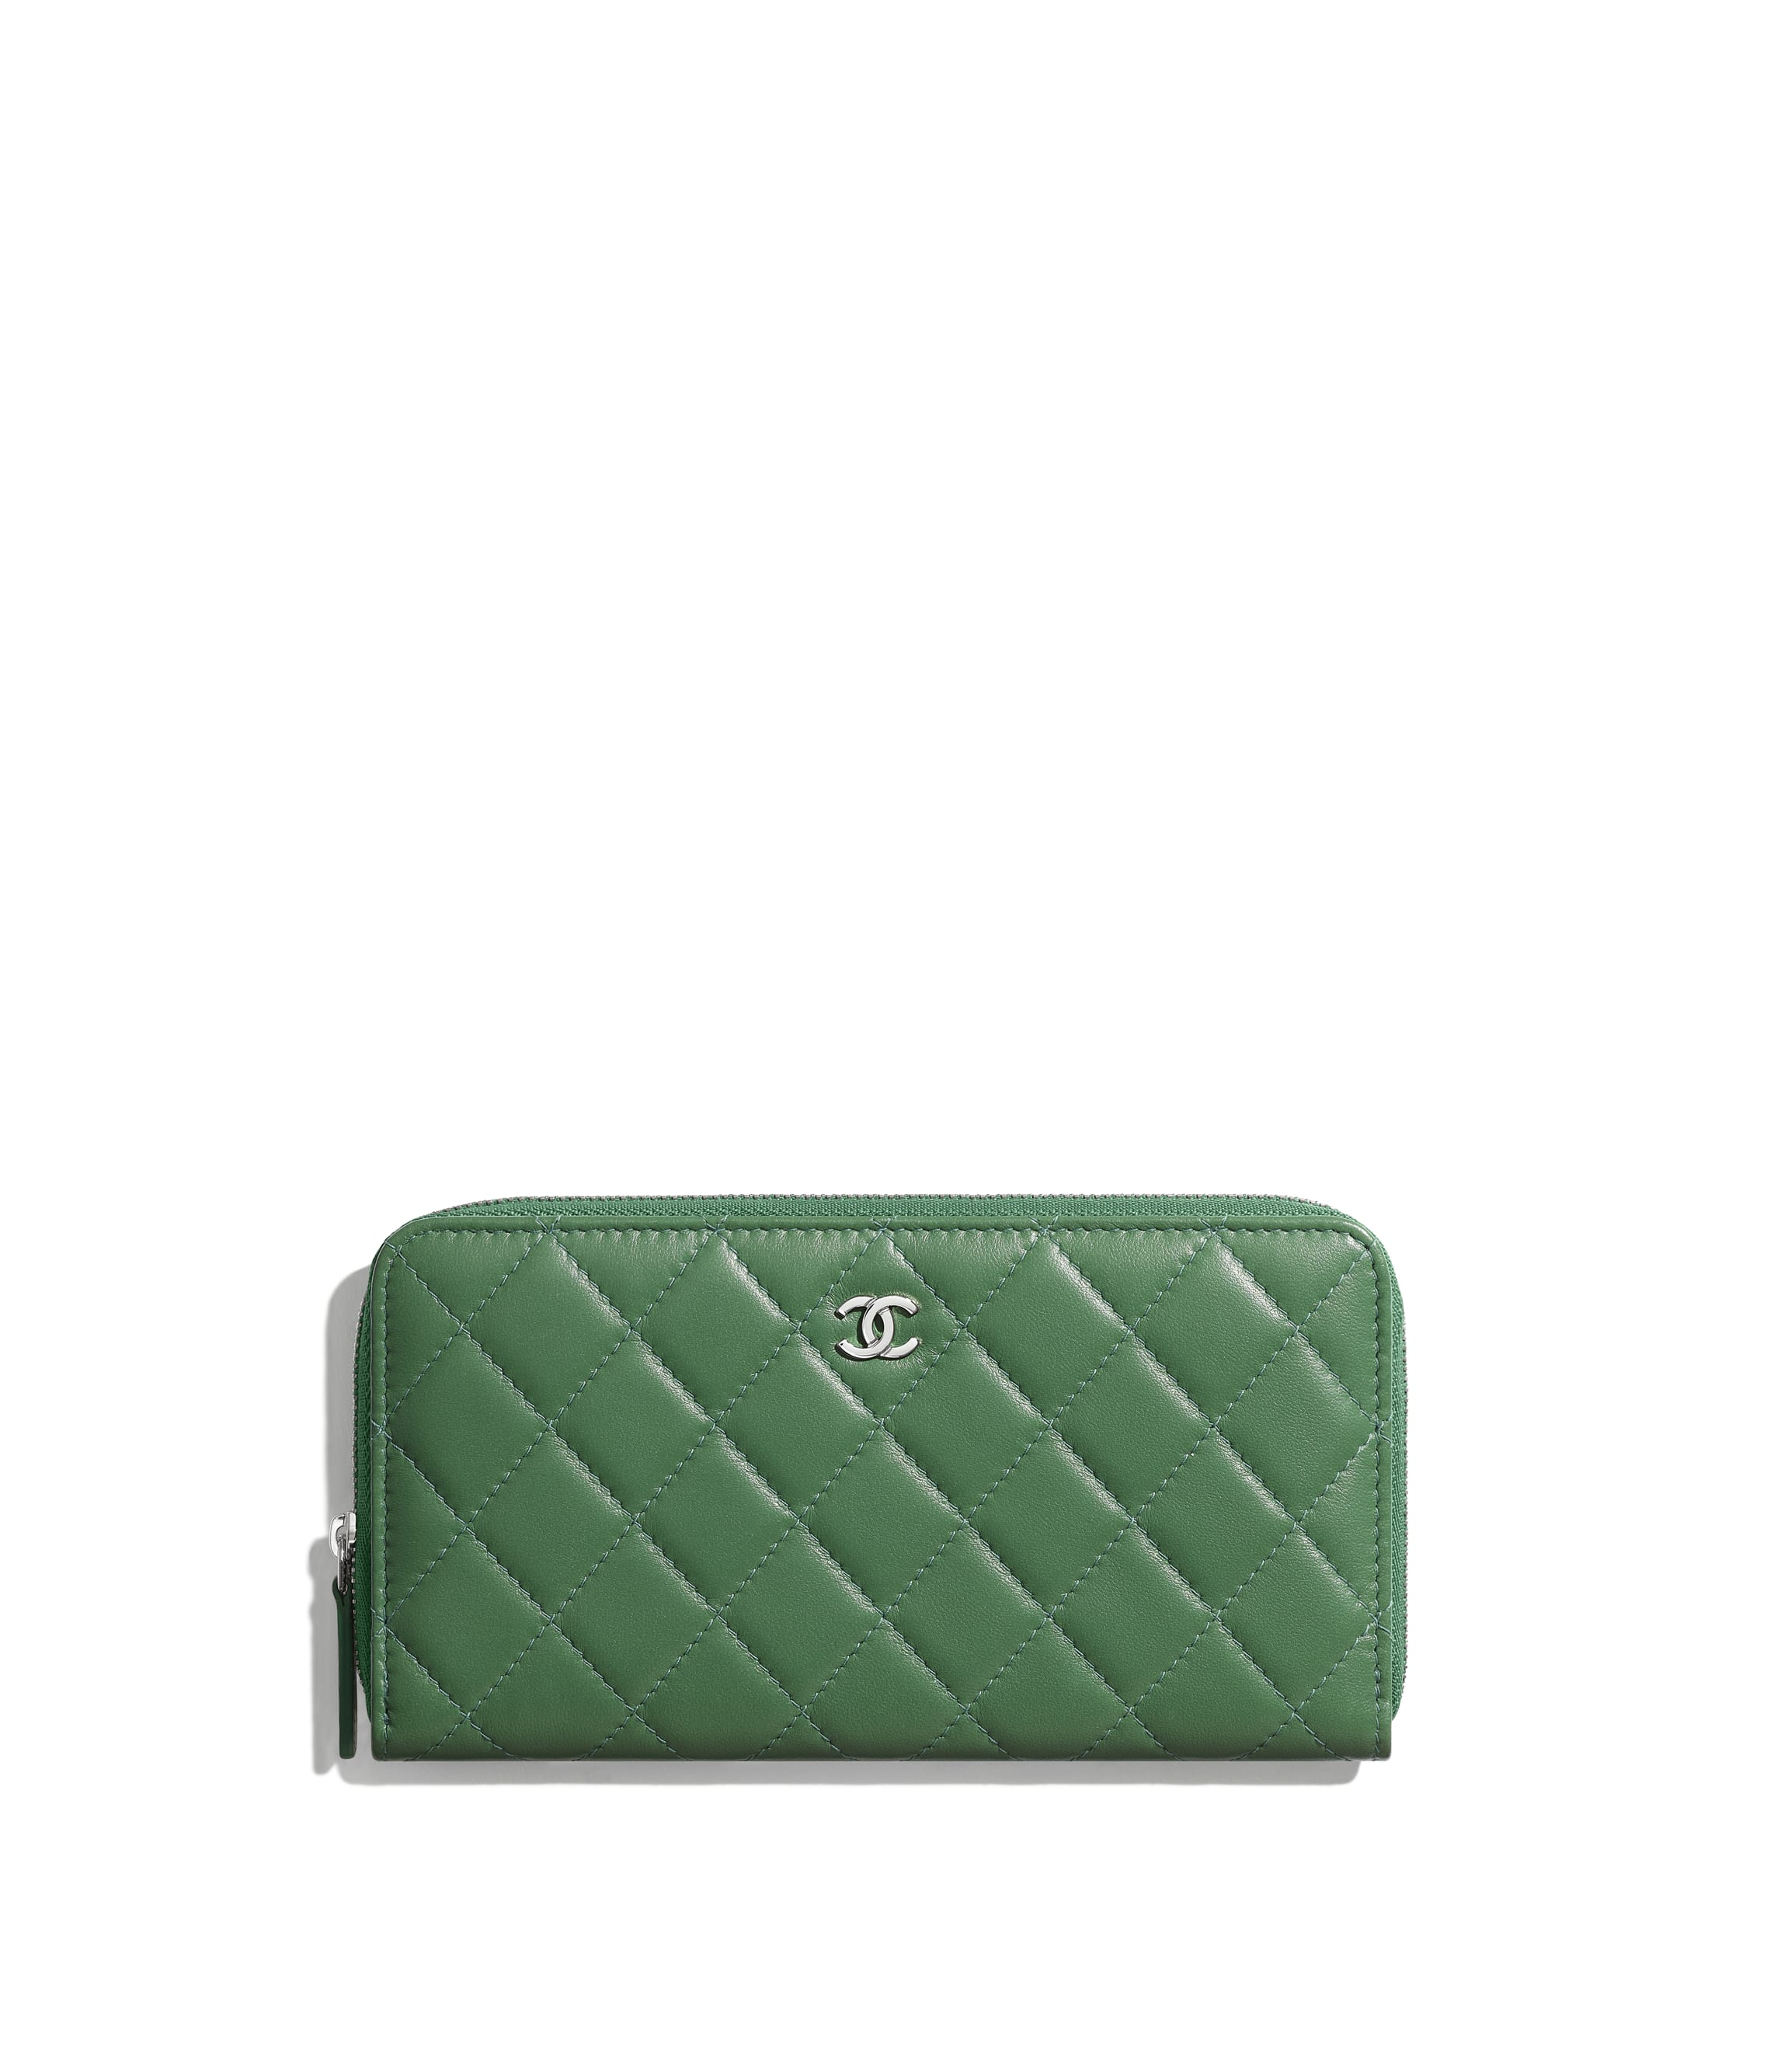 c47fea6138f29 Long Wallets - Small Leather Goods - CHANEL